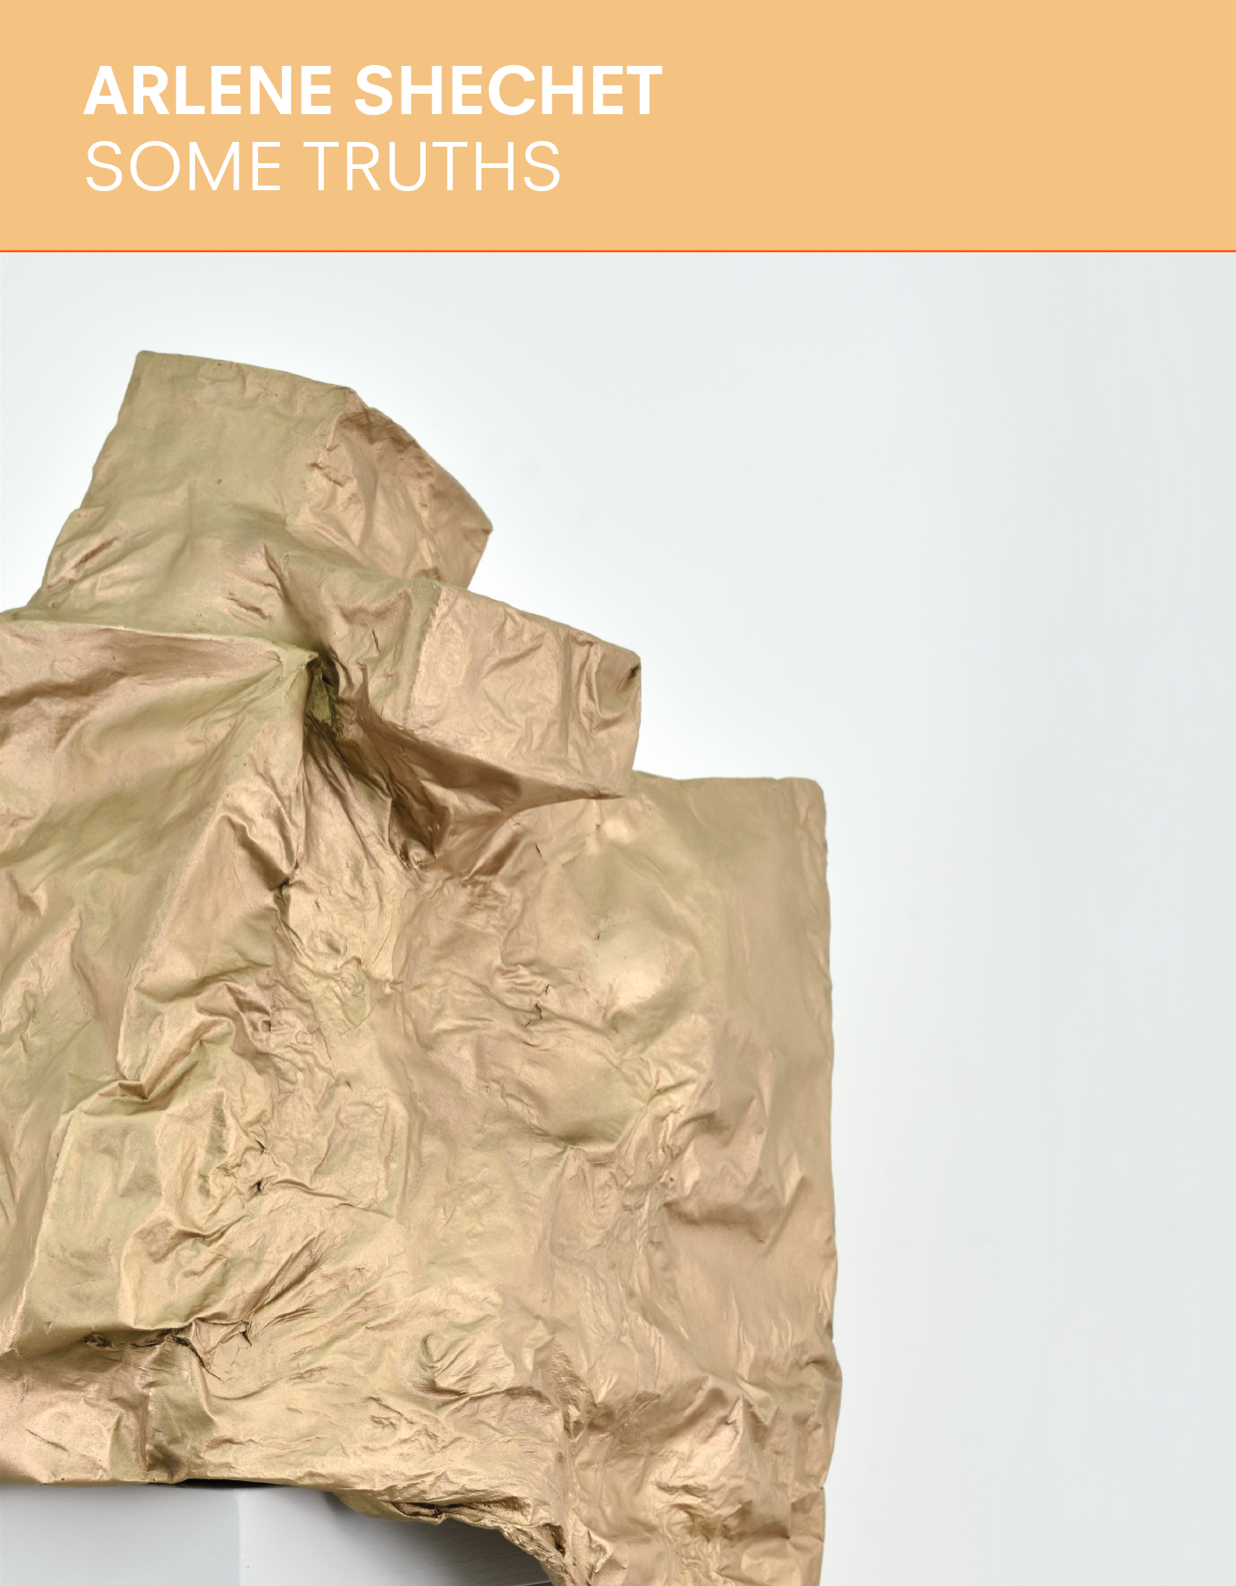 Some Truths   Exhibition catalogue for Some Truths, solo exhibition at Almine Rech Gallery, Paris, France, April 2018.